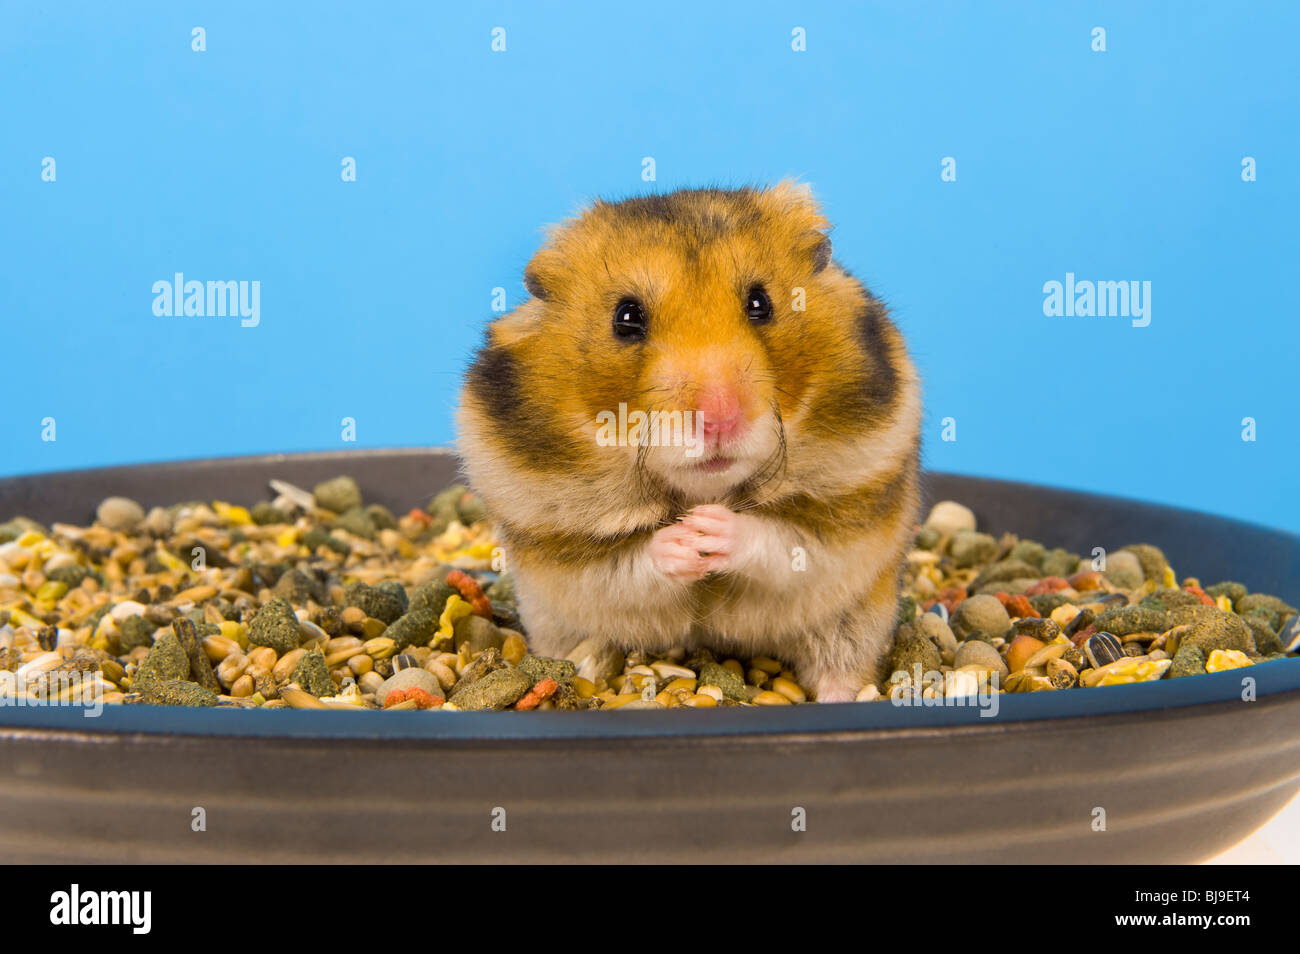 Alimentation Hamster hamster cheeks photos & hamster cheeks images - alamy